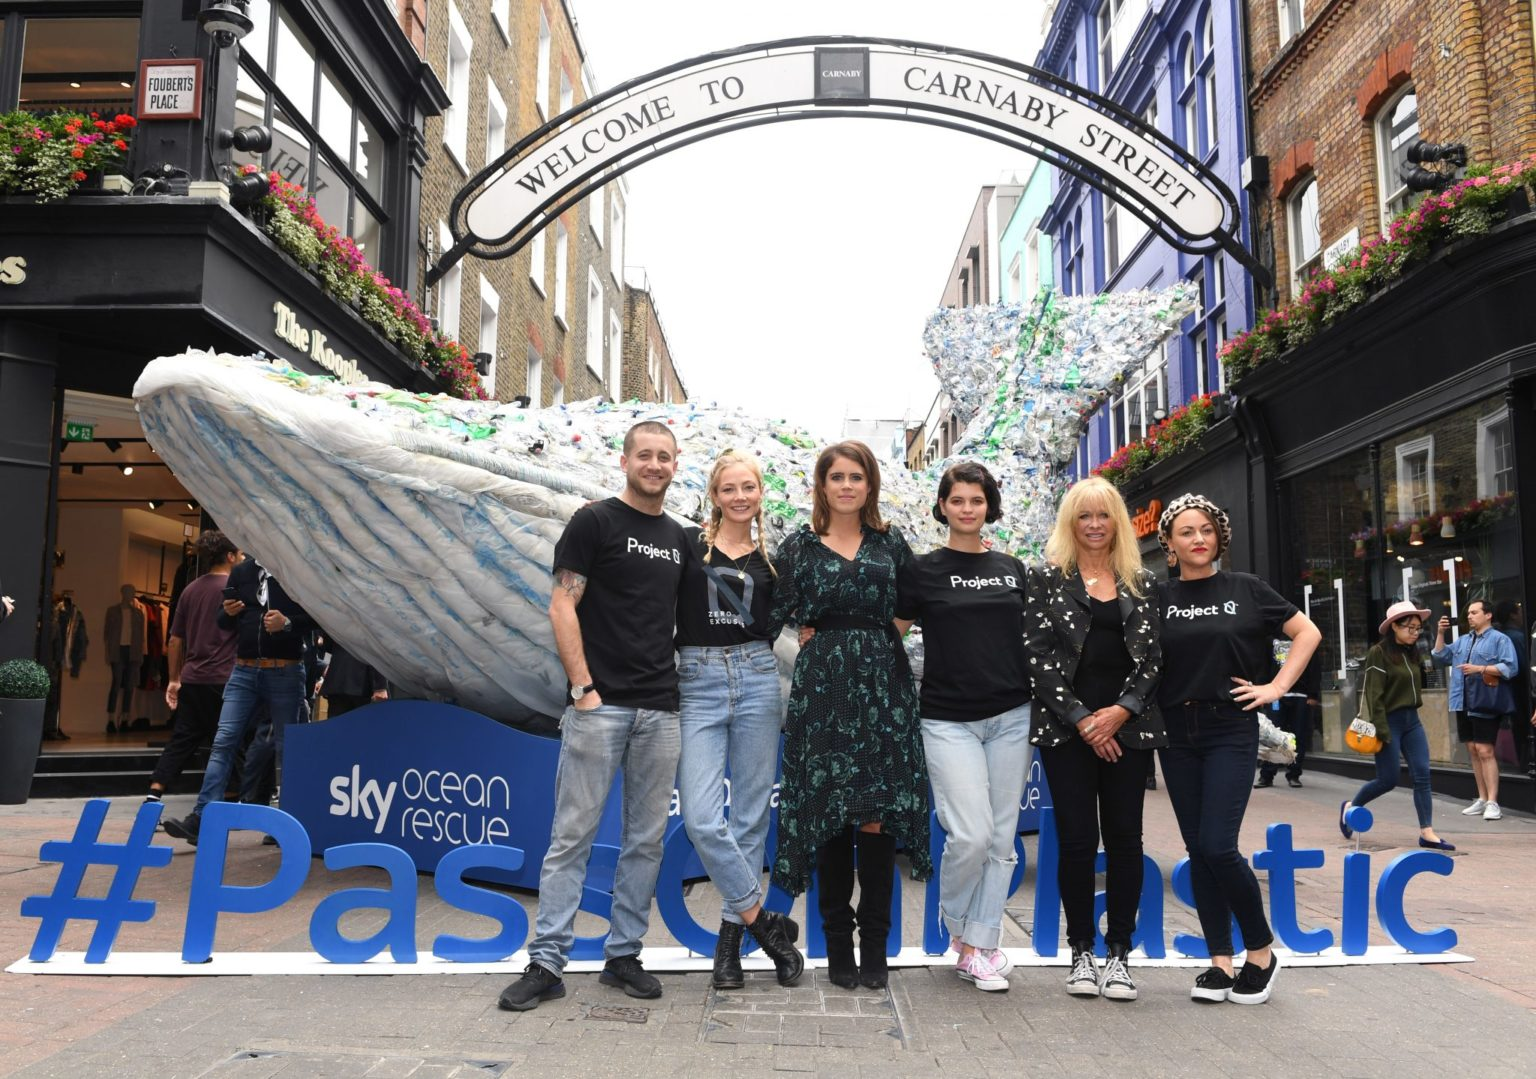 World Oceans Day - Carnaby Street